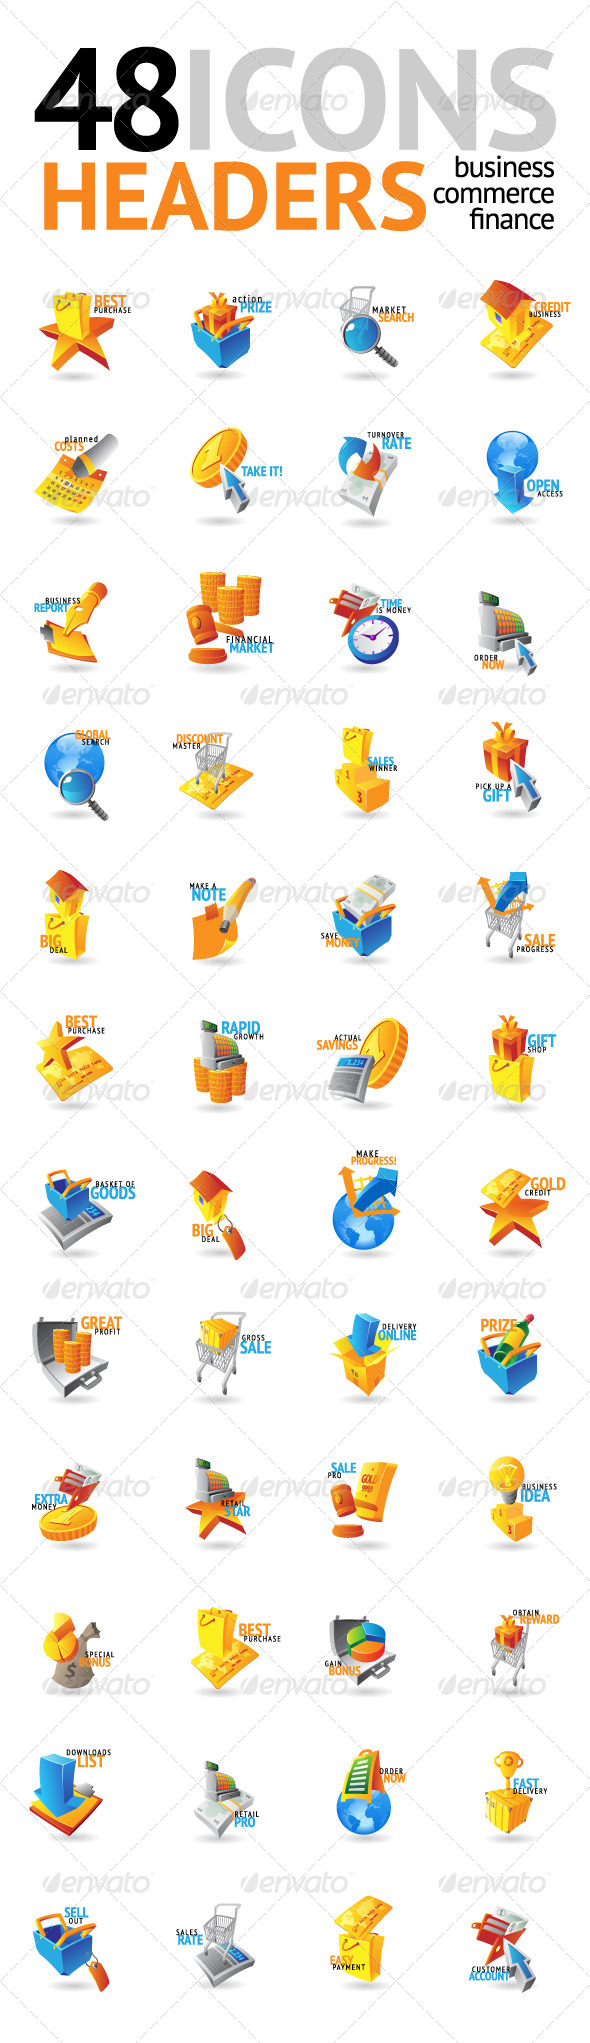 GraphicRiver 48 Illustrations for Business 4676394